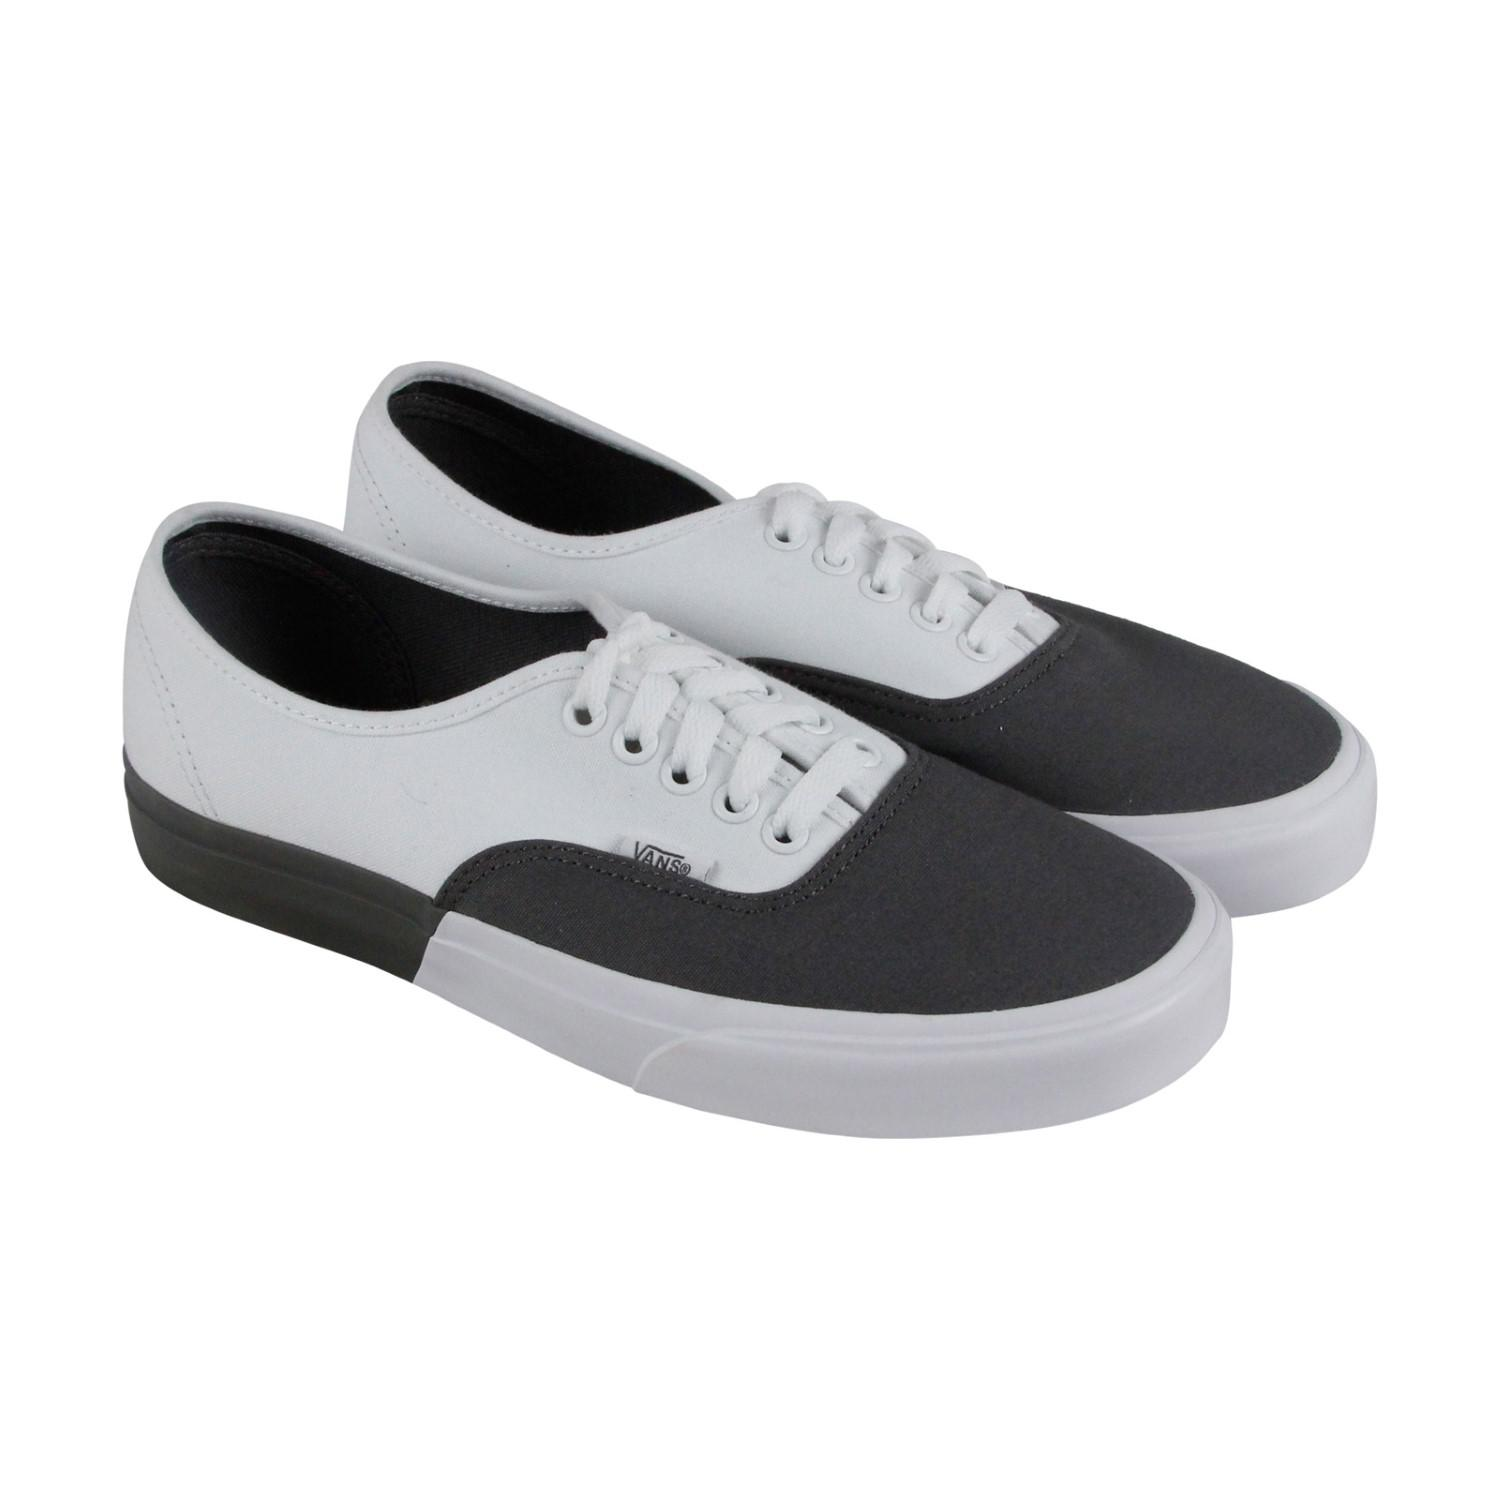 9b5f540303 Lyst - Vans Authentic Pewter True White Lace Up Sneakers in Gray for Men